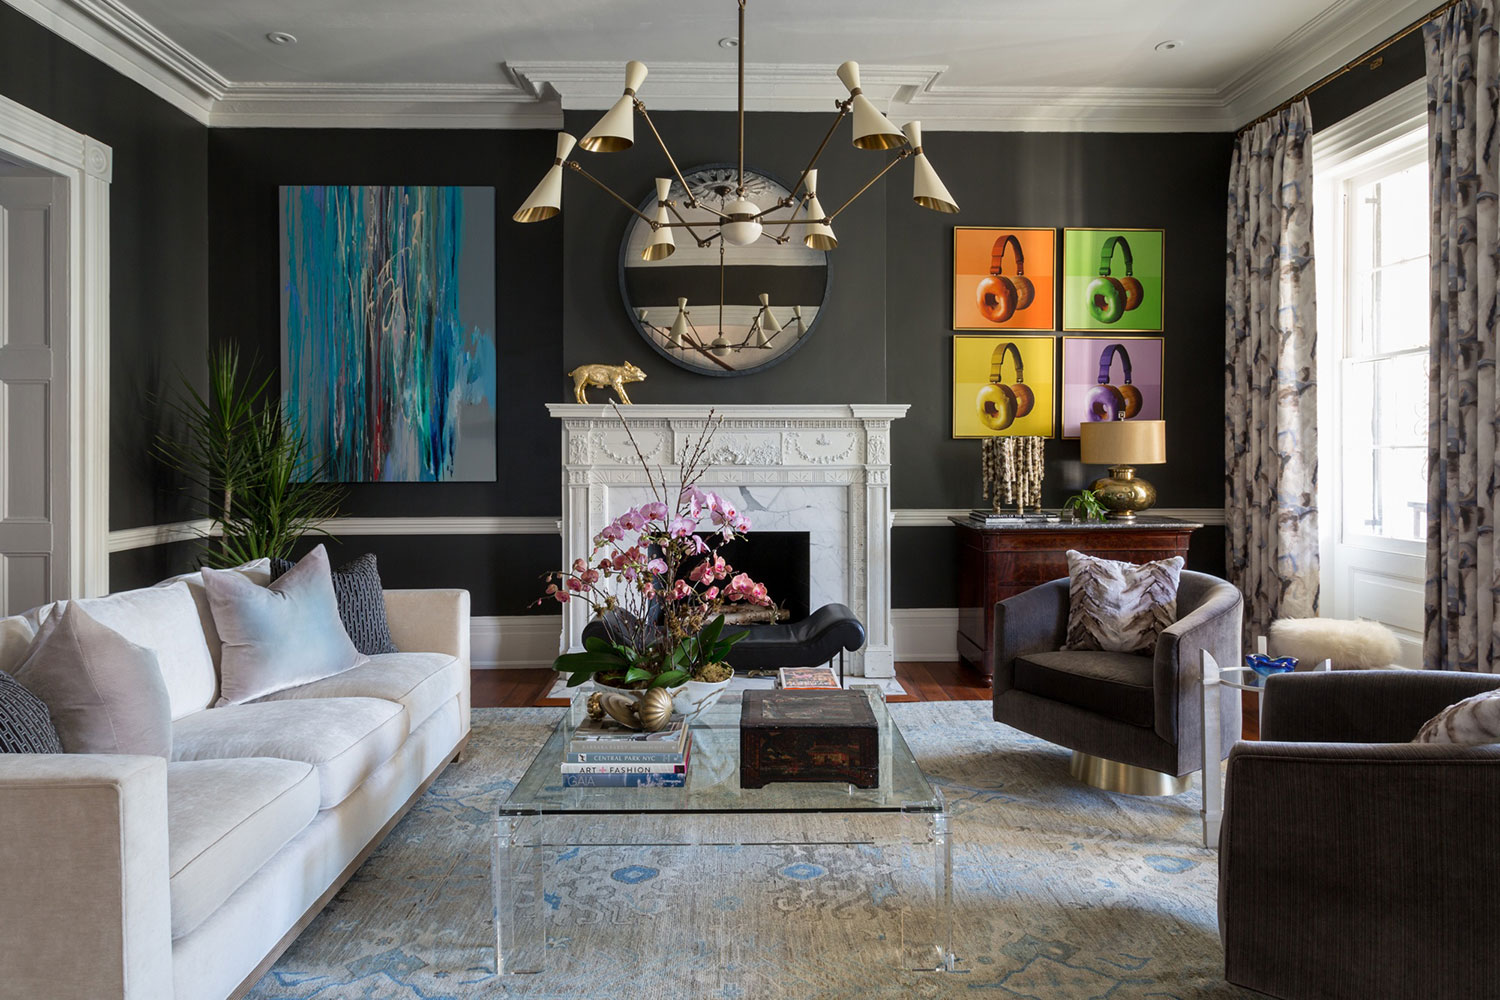 Now one of charlestons best galleries and interior design studios mitchell hill originated as a pop up for art for charity mitchell hill showcases the